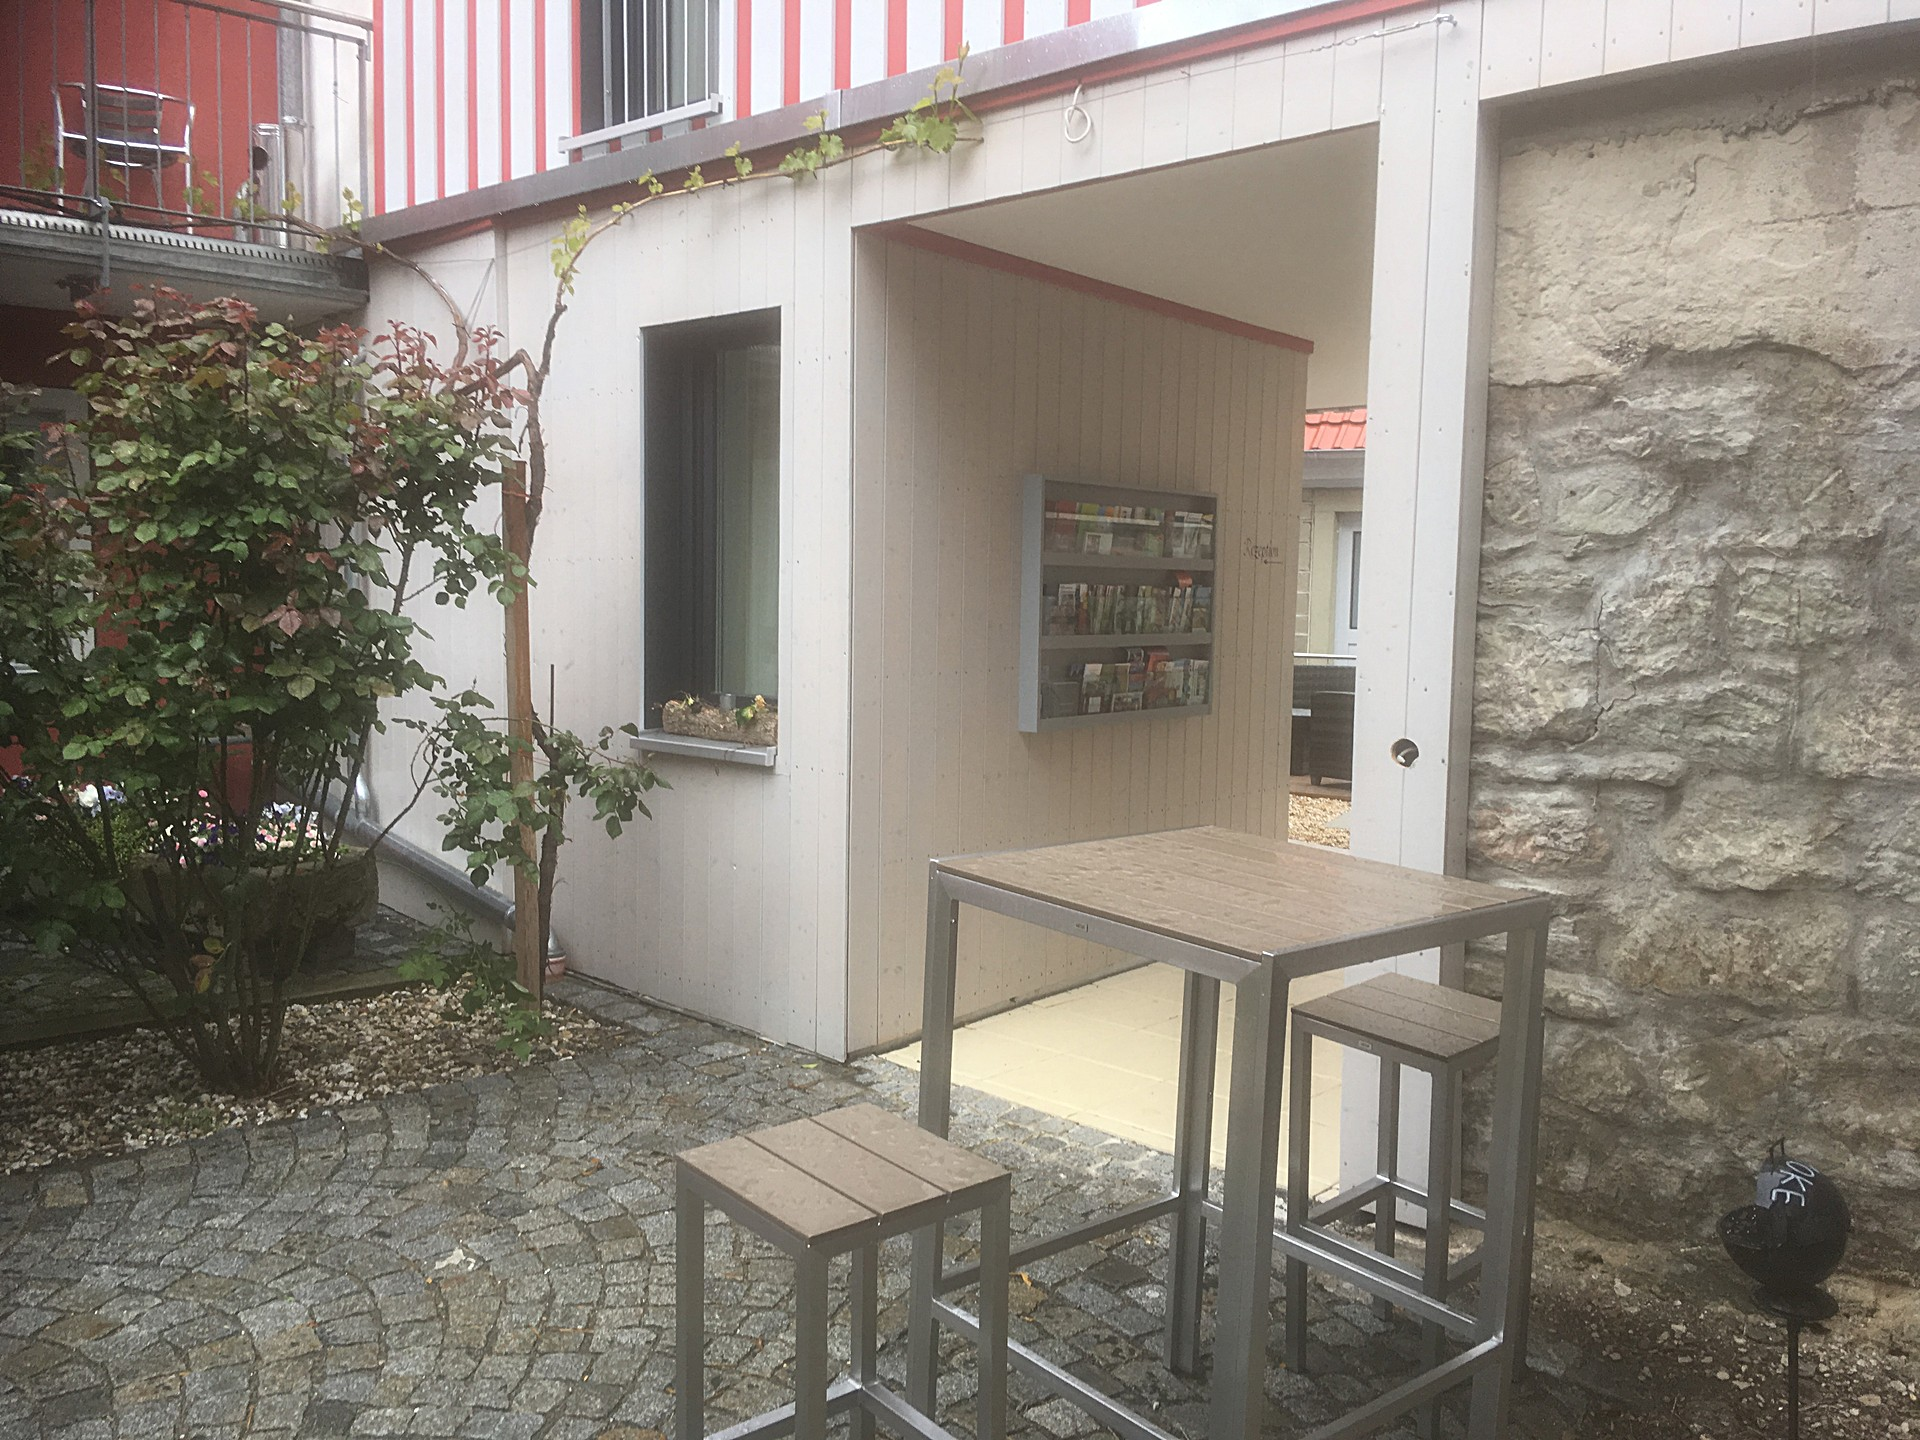 New Longe in the Inner Courtyard and new Brochure Dispenser